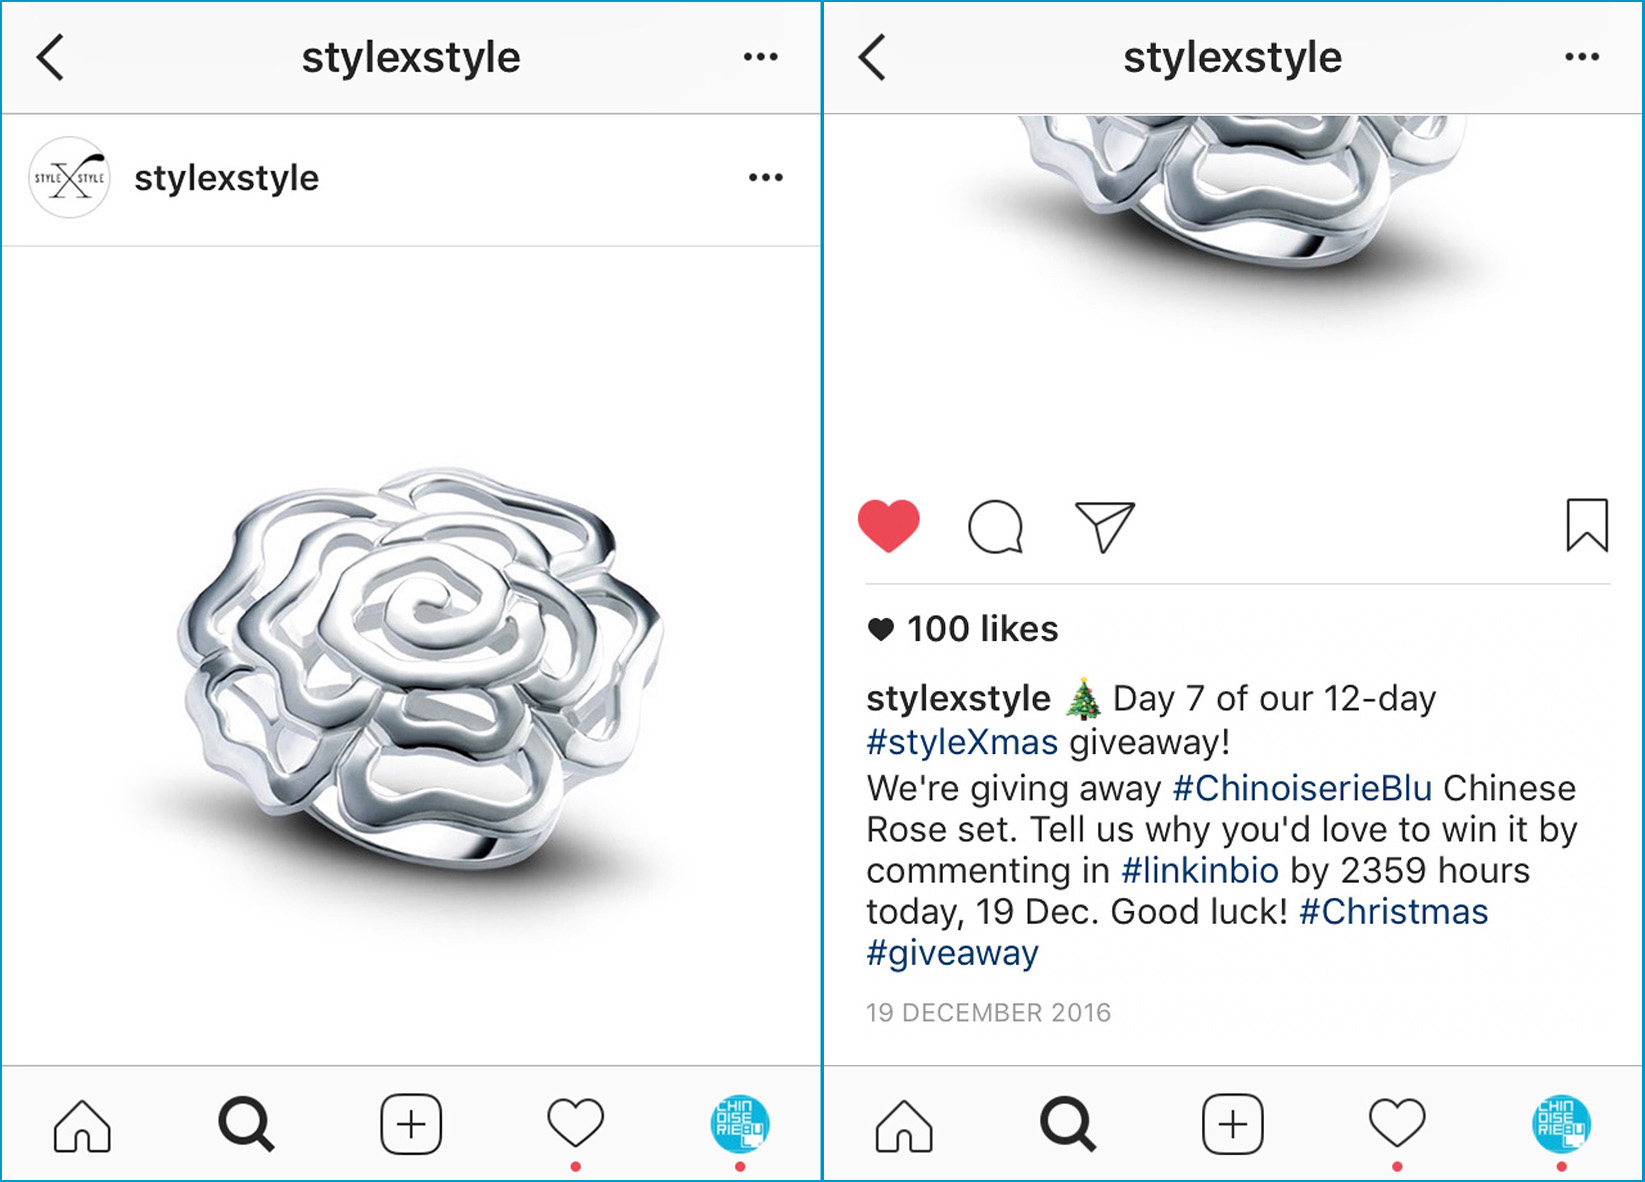 CBLU styleXstyle instagram-ipad Chinese Rose 12D Christmas Giveaway 2016.12.19